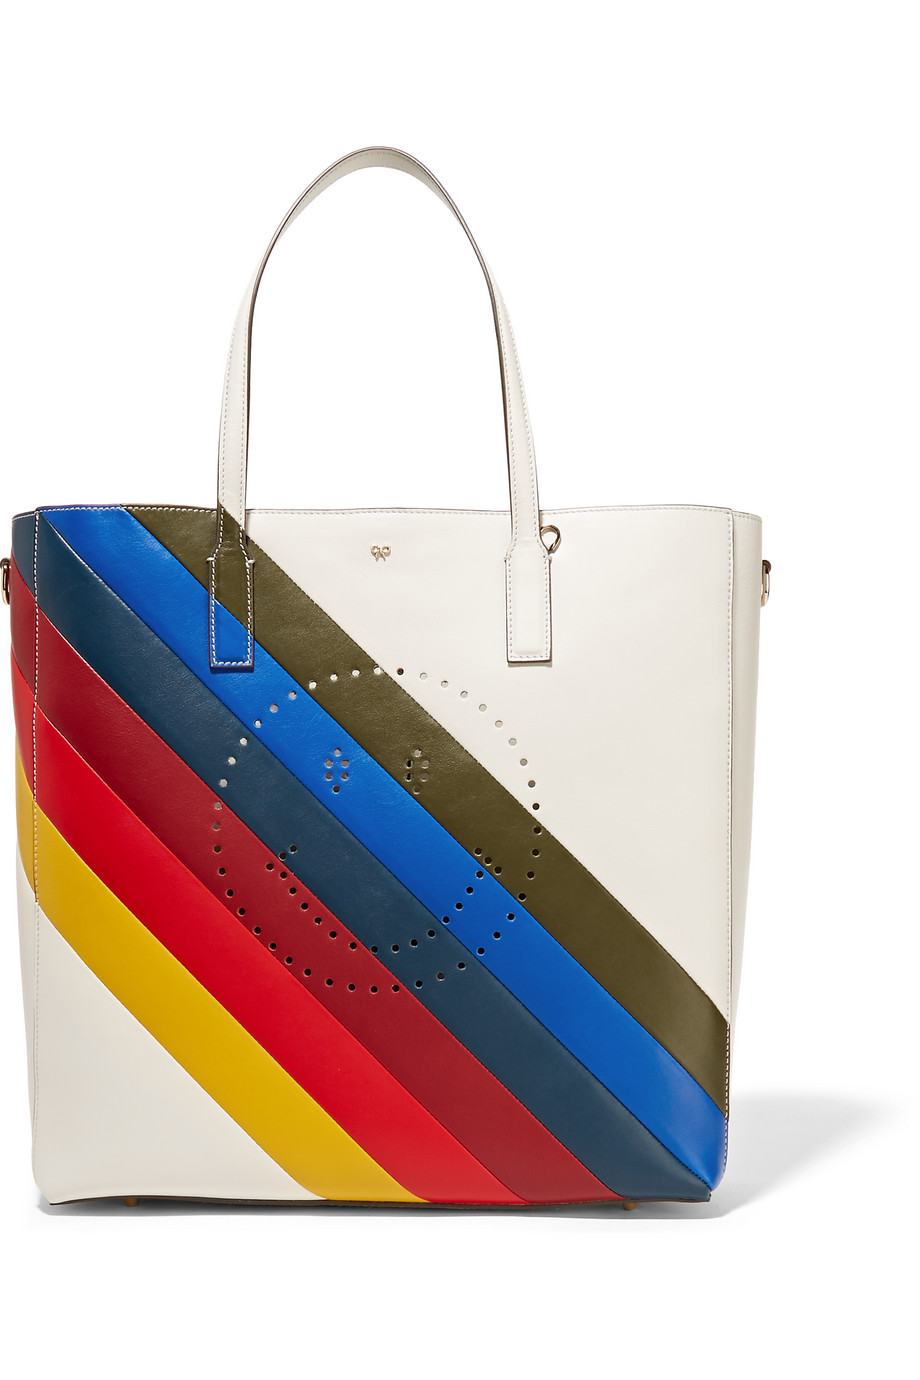 Anya Hindmarch Ebury Smiley Perforated Leather Tote, Ivory/Blue, Women's